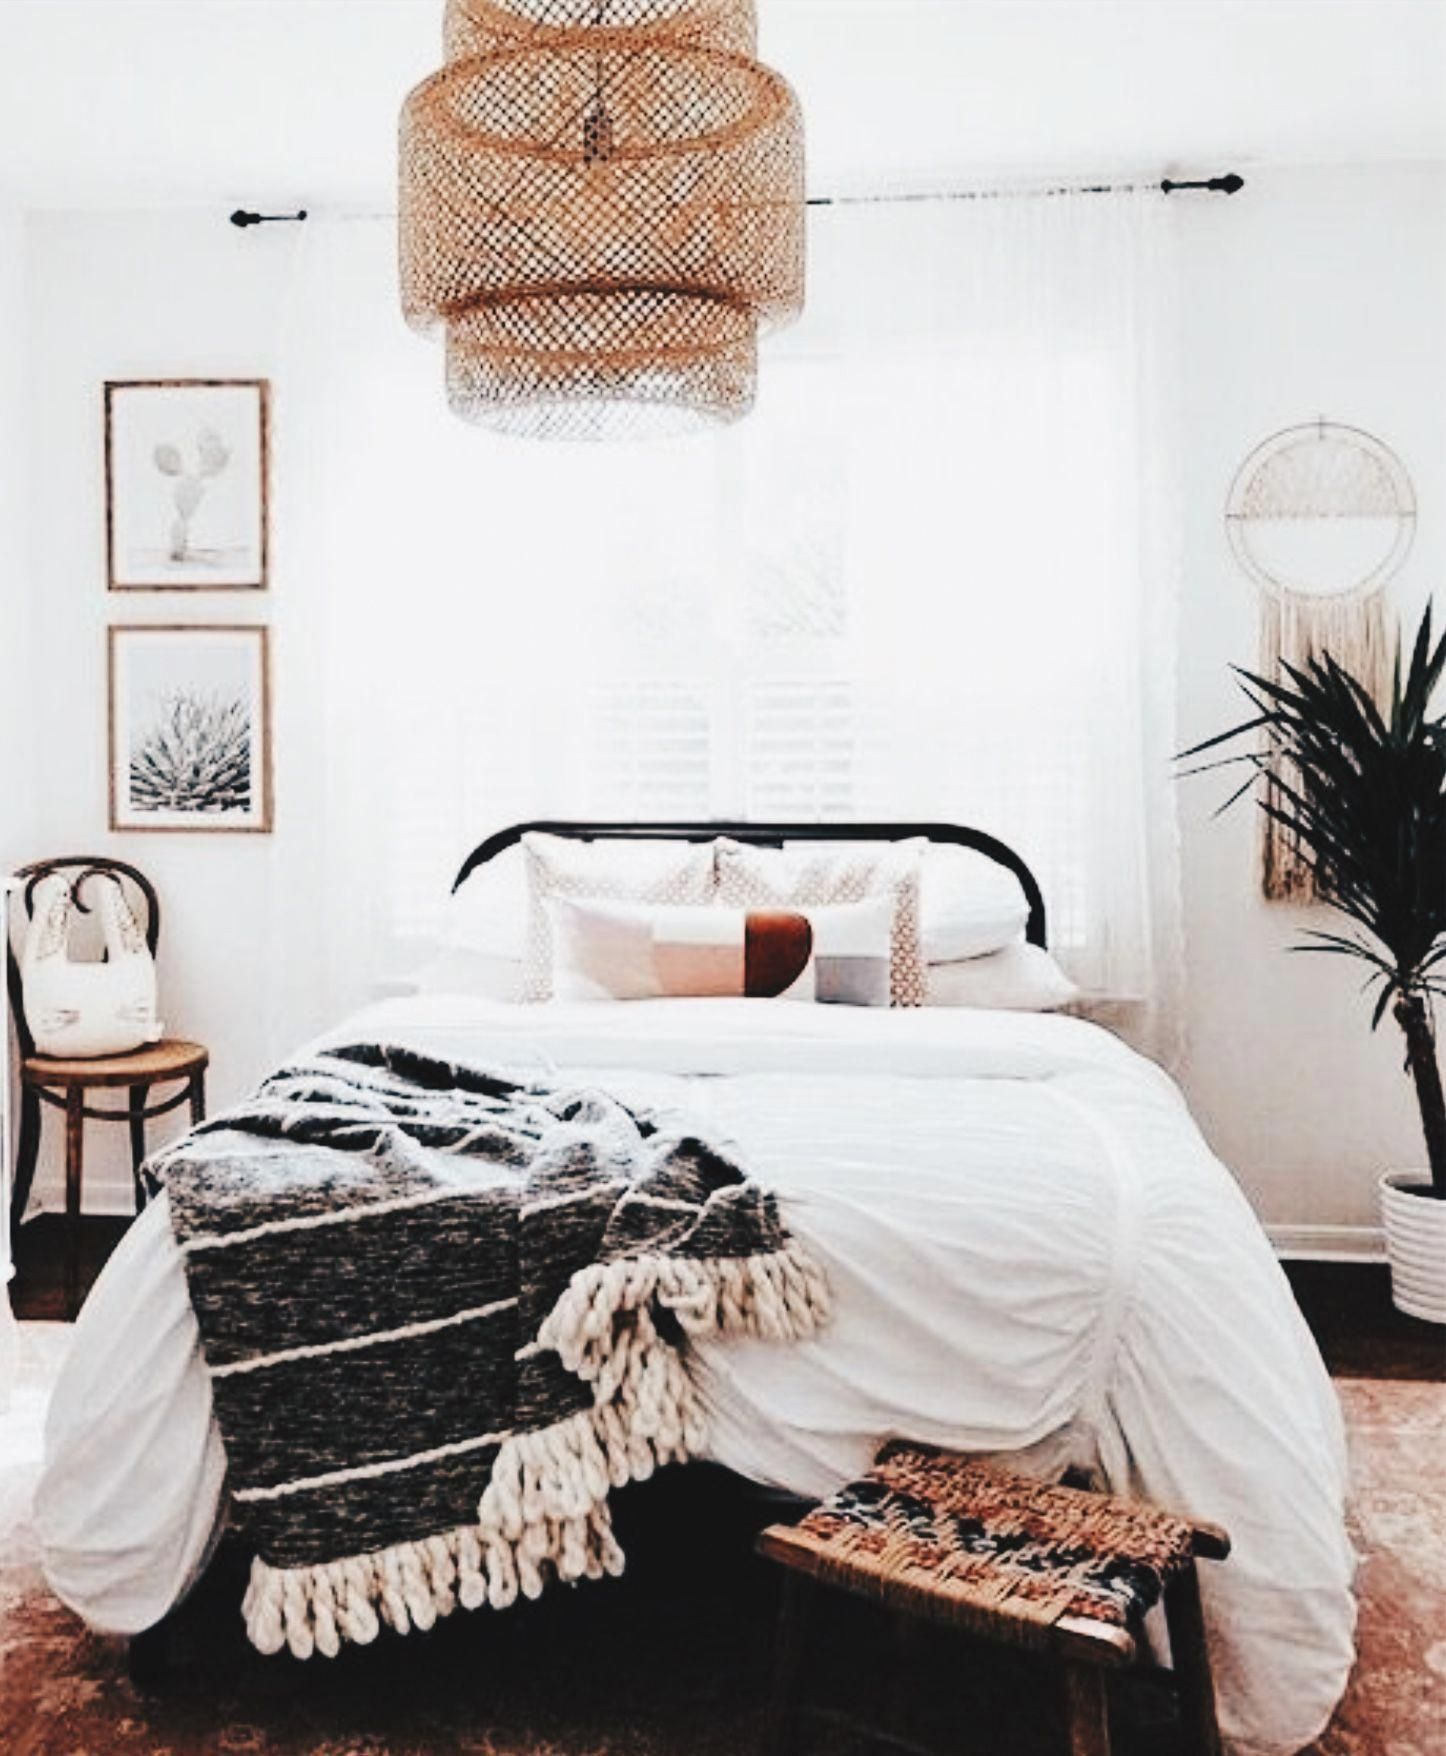 Bedroom ideas for woman bedroom women designing a bedroom for a woman cannot be considered as a simple thing to do bedroomideasforwomen